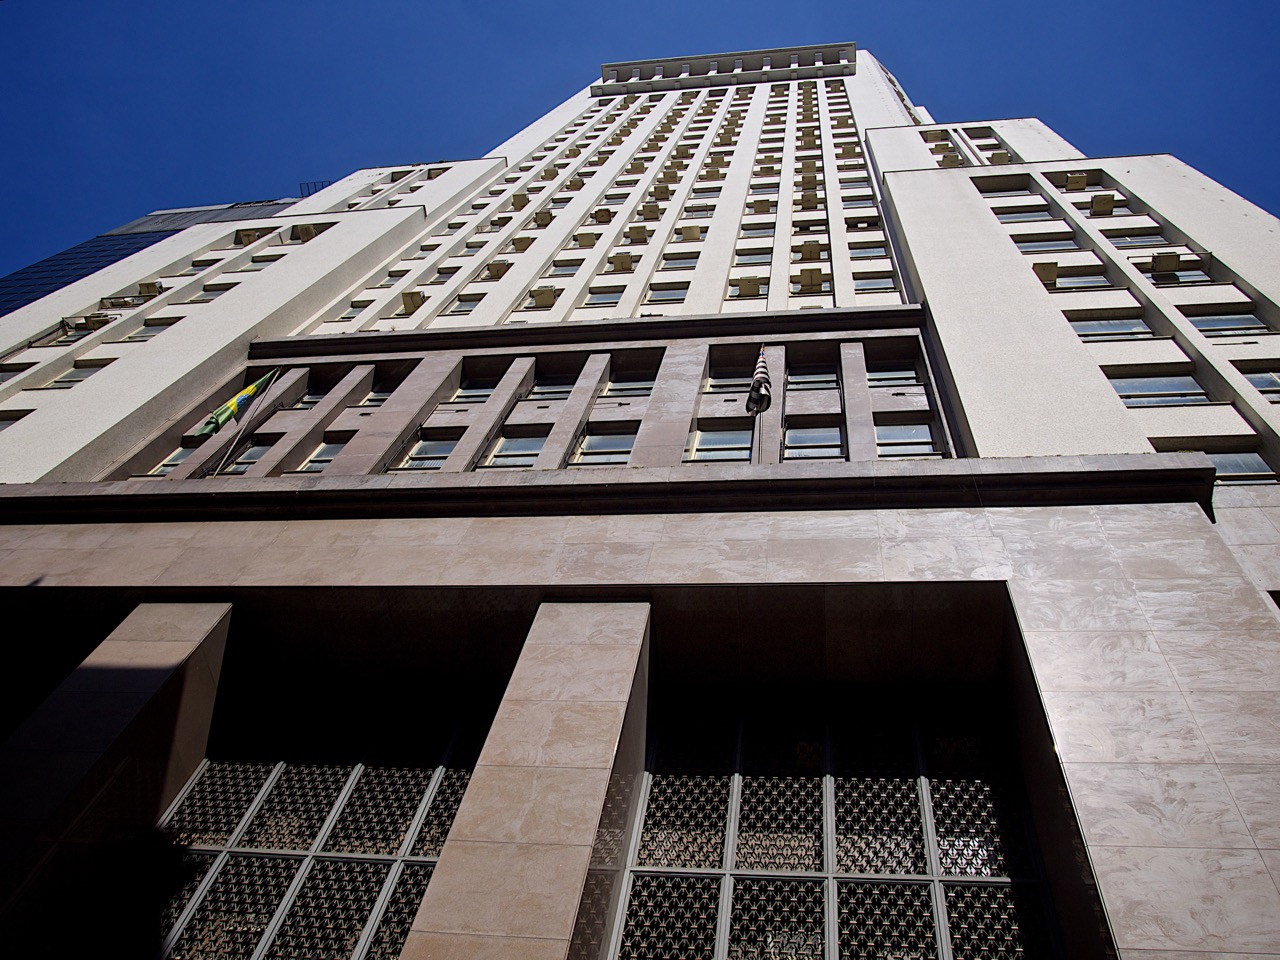 The Banespa Building (2nd tallest building in Sao Paulo)